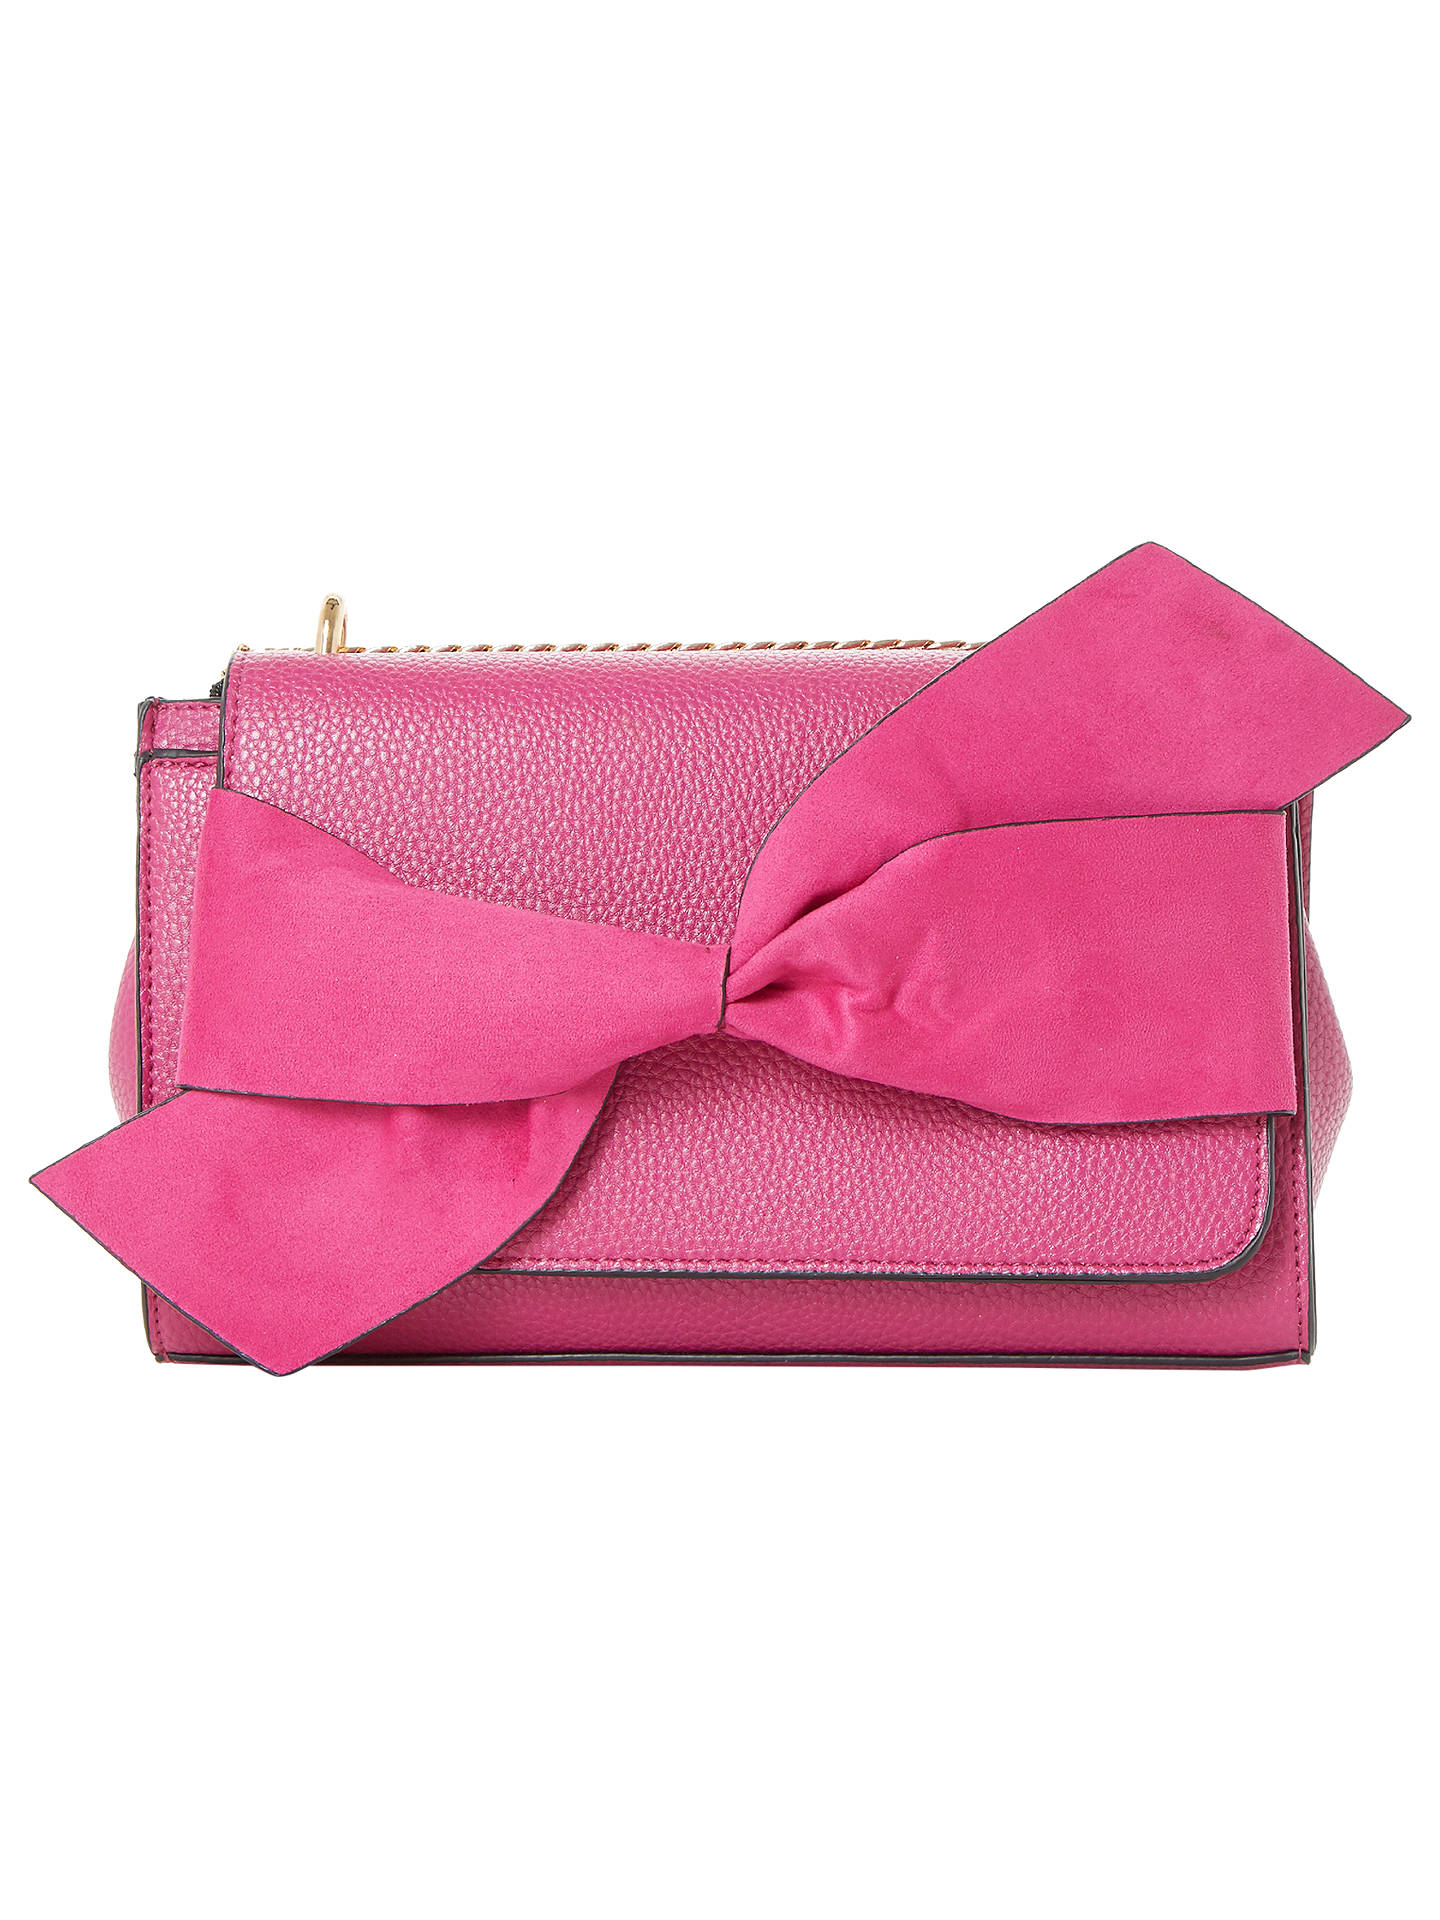 BuyDune Elloie Bow Clutch Bag, Pink Online at johnlewis.com